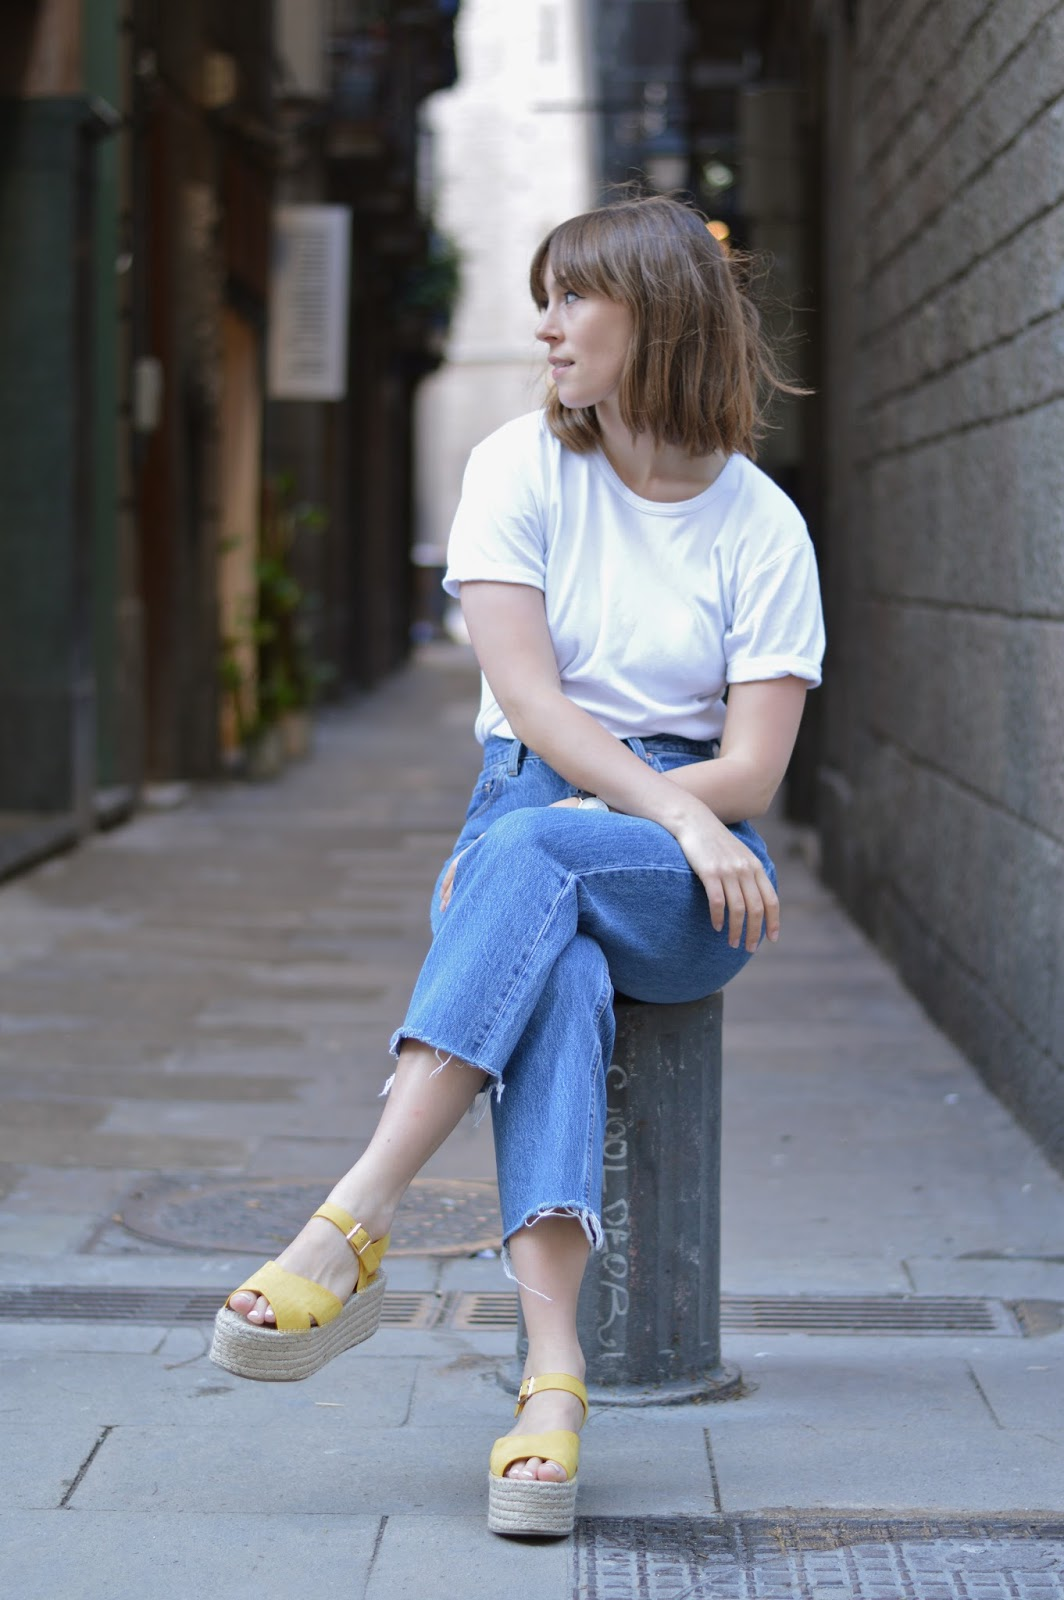 Basics styling - how to wear style blue jeans and a white t-shirt rules